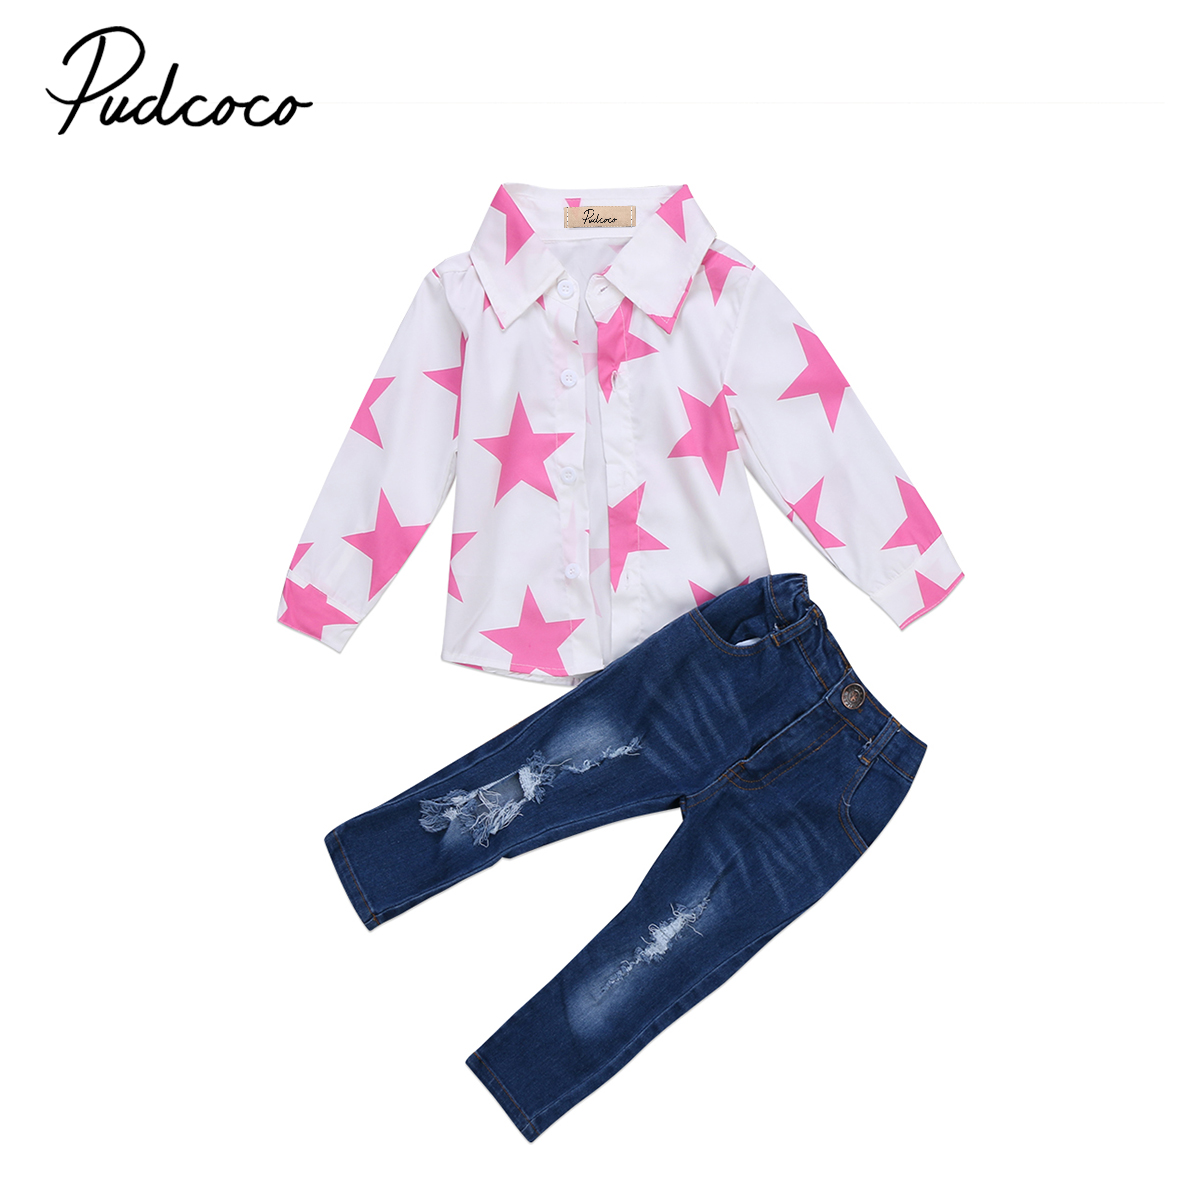 Fashion Toddler Kids Baby Girls Long Sleeve T-shirt Ripped Jeans Clothing Distressed Pant Star Print Shirt Outfit Set 0-7Y 2017 new fashion children girl clothes off shoulder long sleeve t shirt tops hole denim pant jeans 2pcs outfit kids clothing set